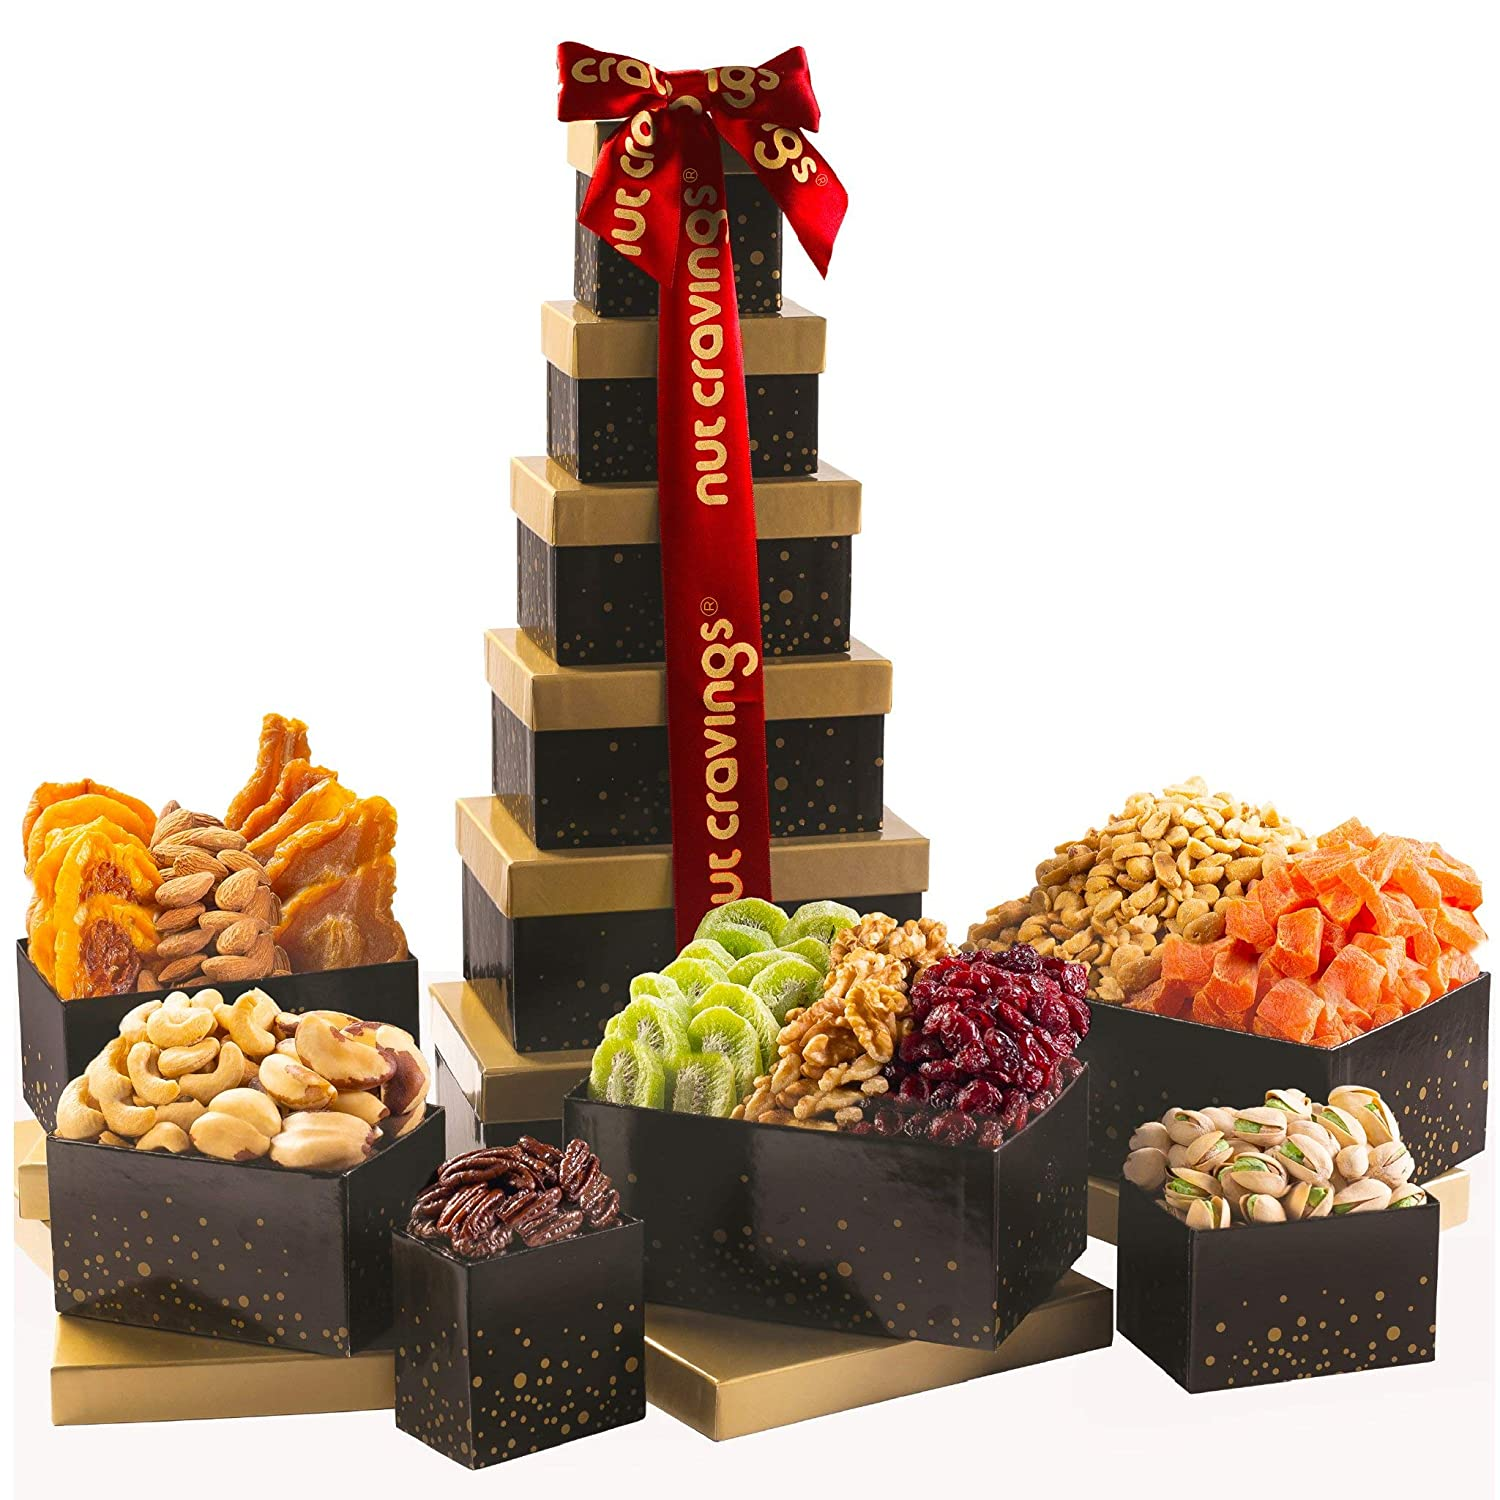 Gourmet Dried Fruit & Nut Tower Gift Basket Tray (12 Mix) - Variety Care Package, Birthday Party Food, Holiday Arrangement Platter - Healthy Snack Box for Families, Women, Men, Adults